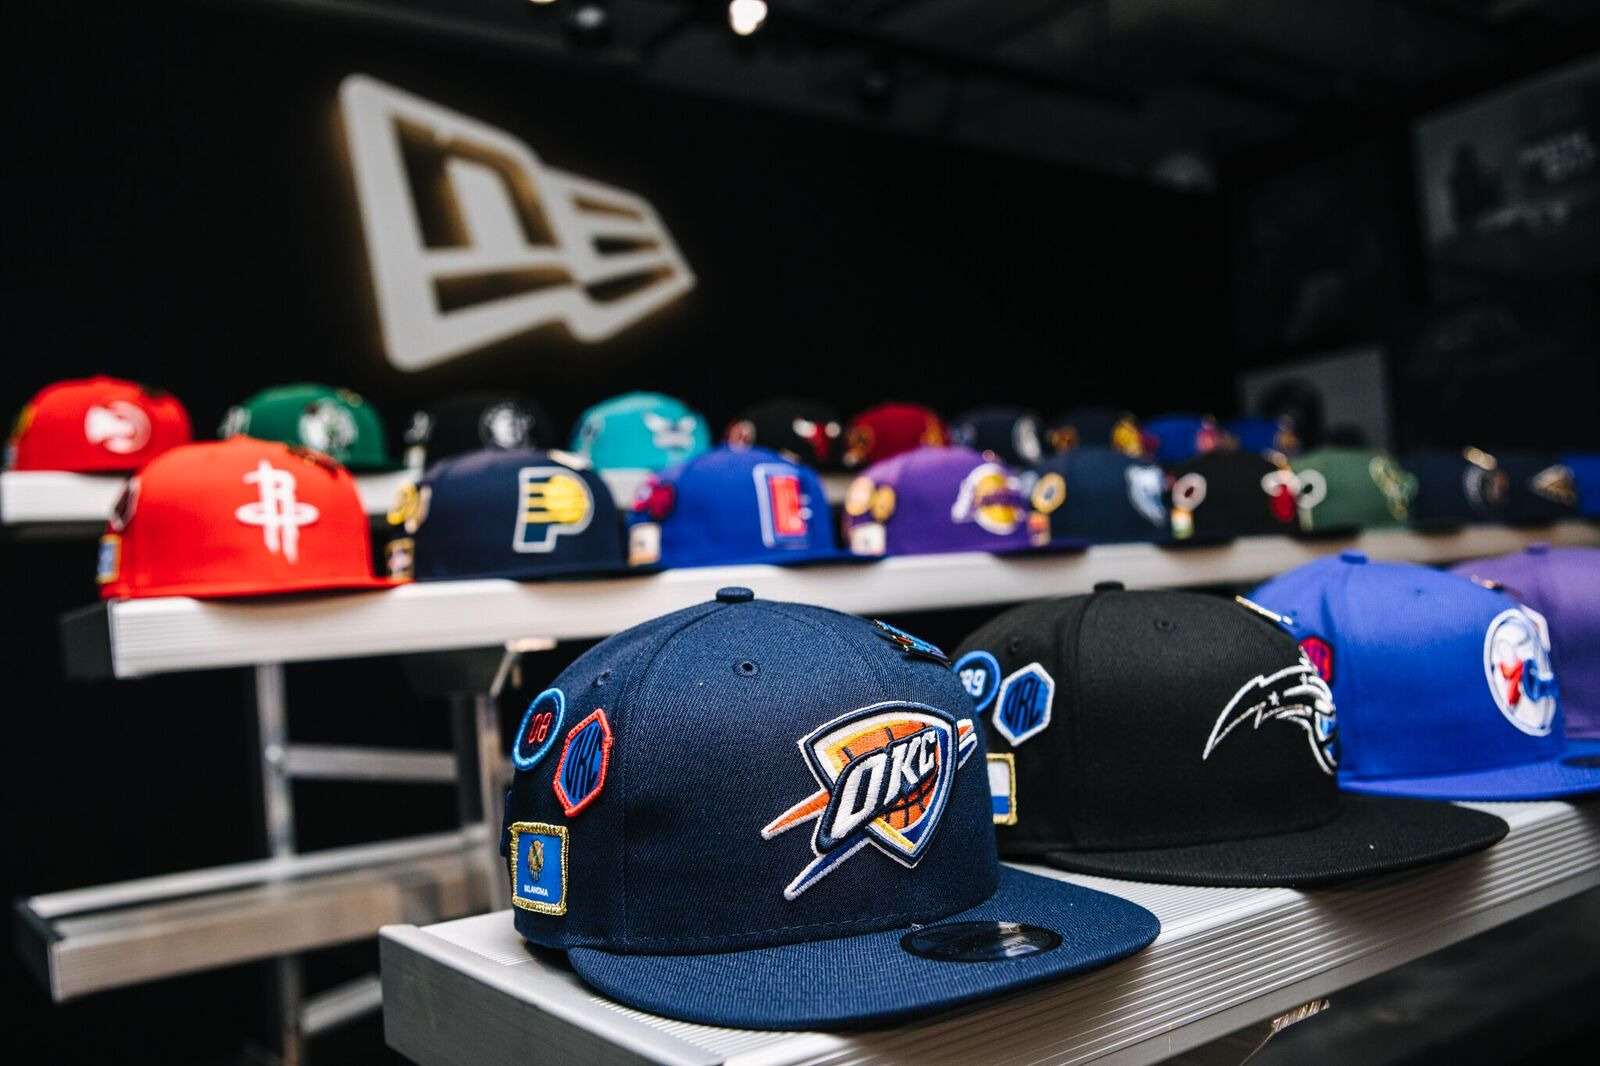 finest selection d24f5 878a1 aliexpress image is loading new era 39thirty fitted cap new york yankees  fb3cc 1ae0e  coupon code june 19 2018 buffalo new york on the week of the  nba draft ...